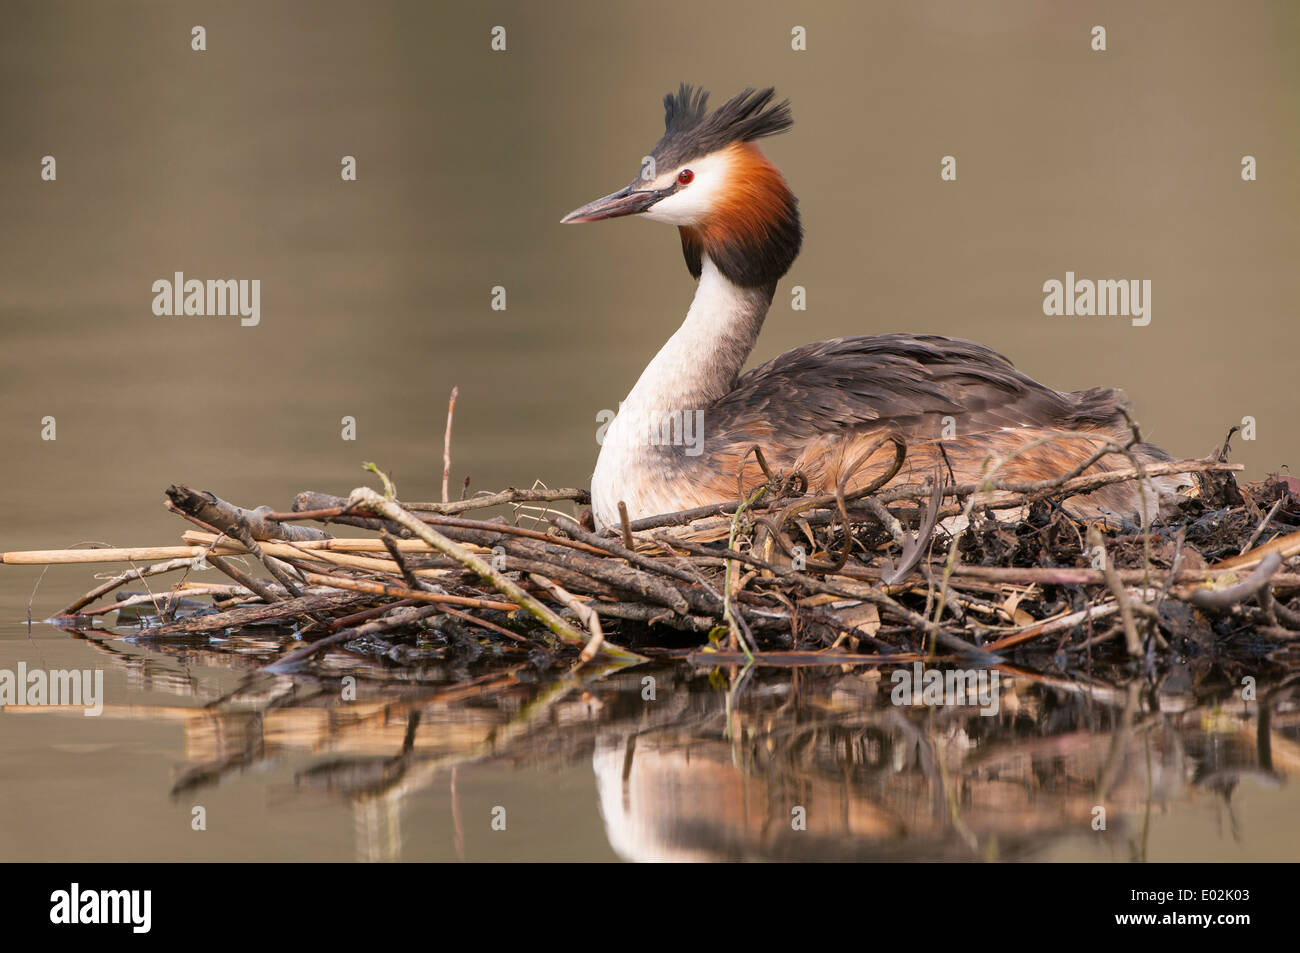 great crested grebe, podiceps cristatus - Stock Image